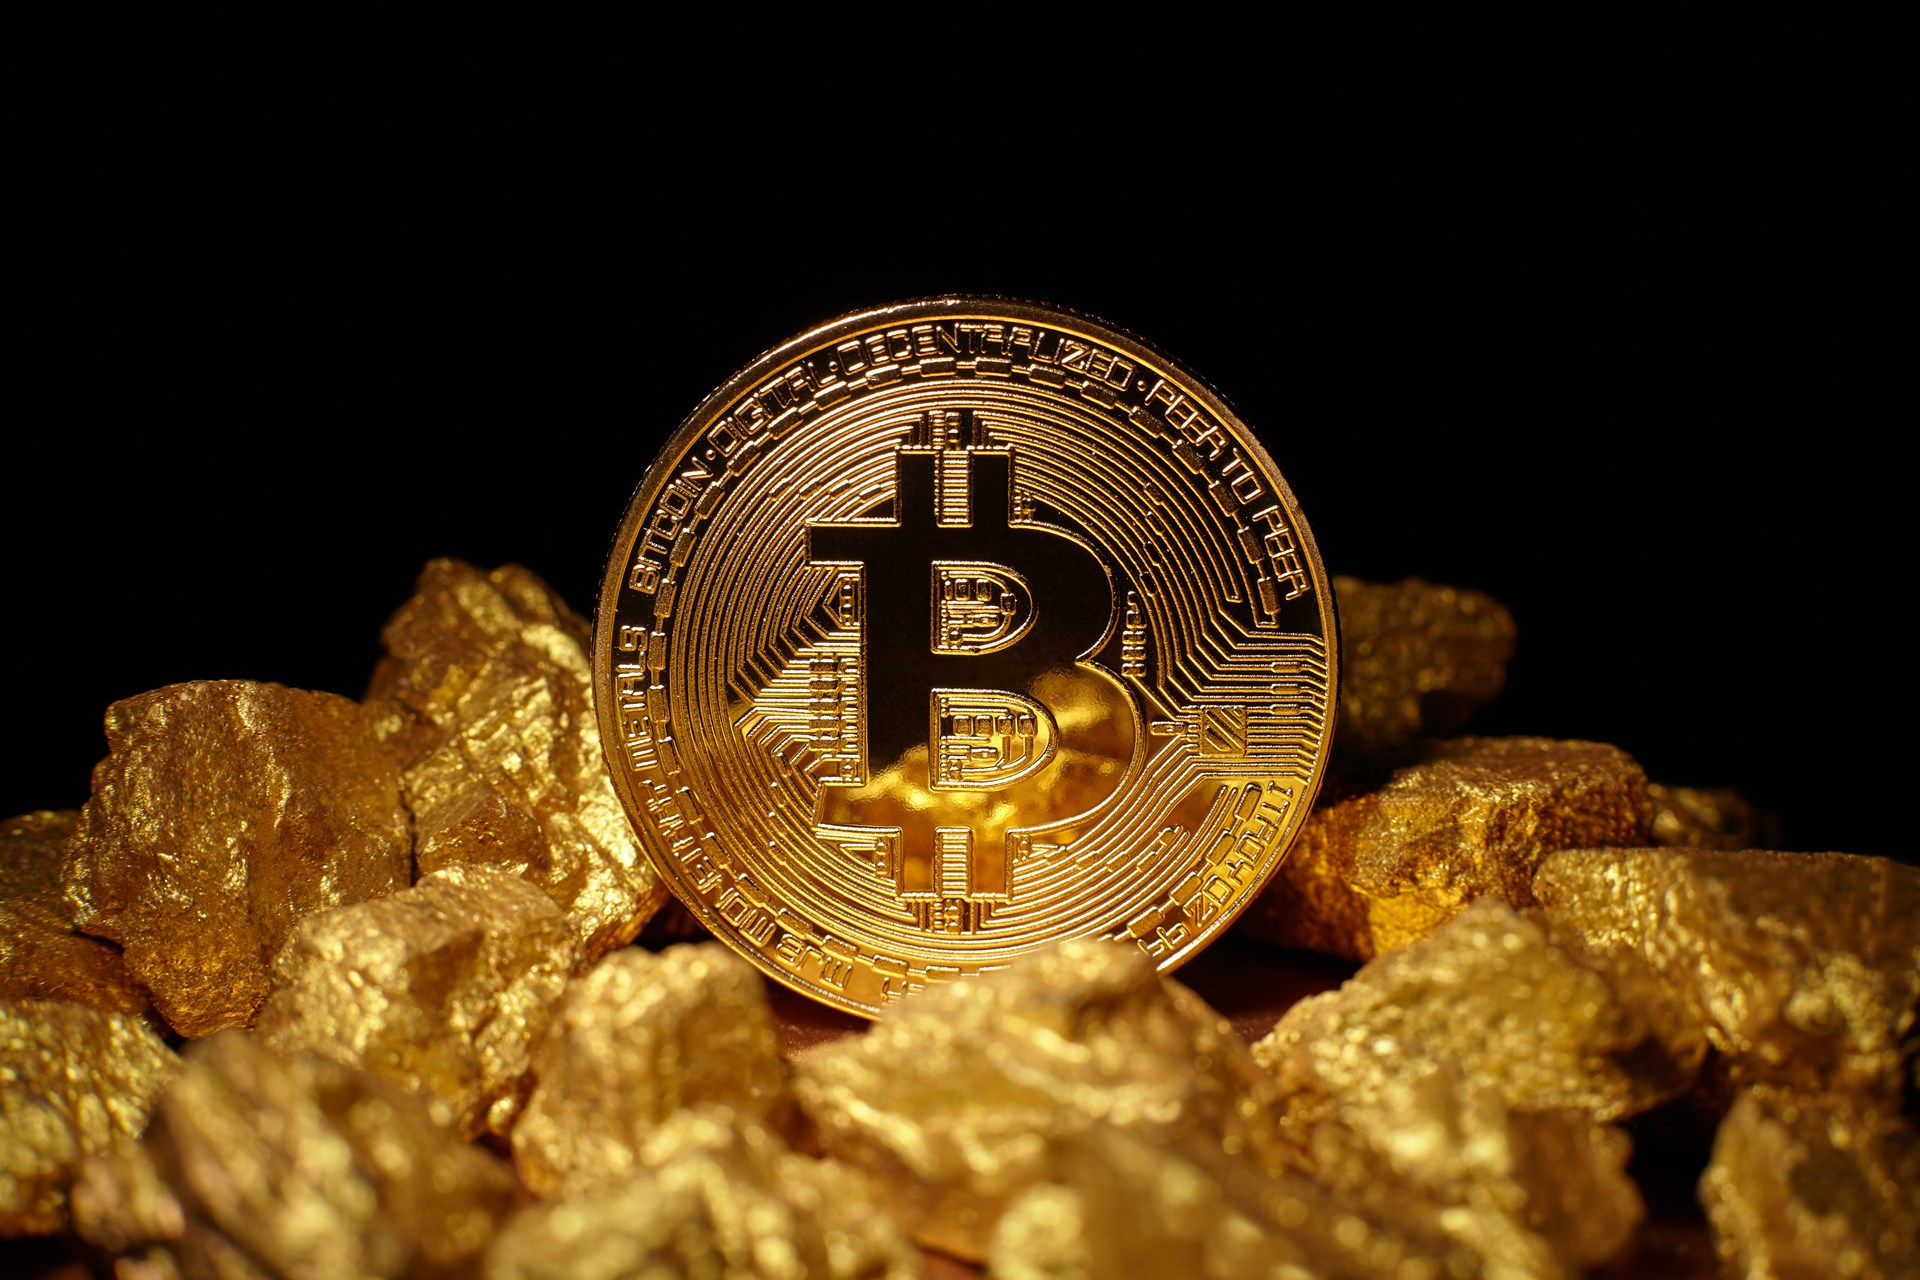 Bitcoin Rises to $5,775 and the Drop Gold Campaign Gains Traction